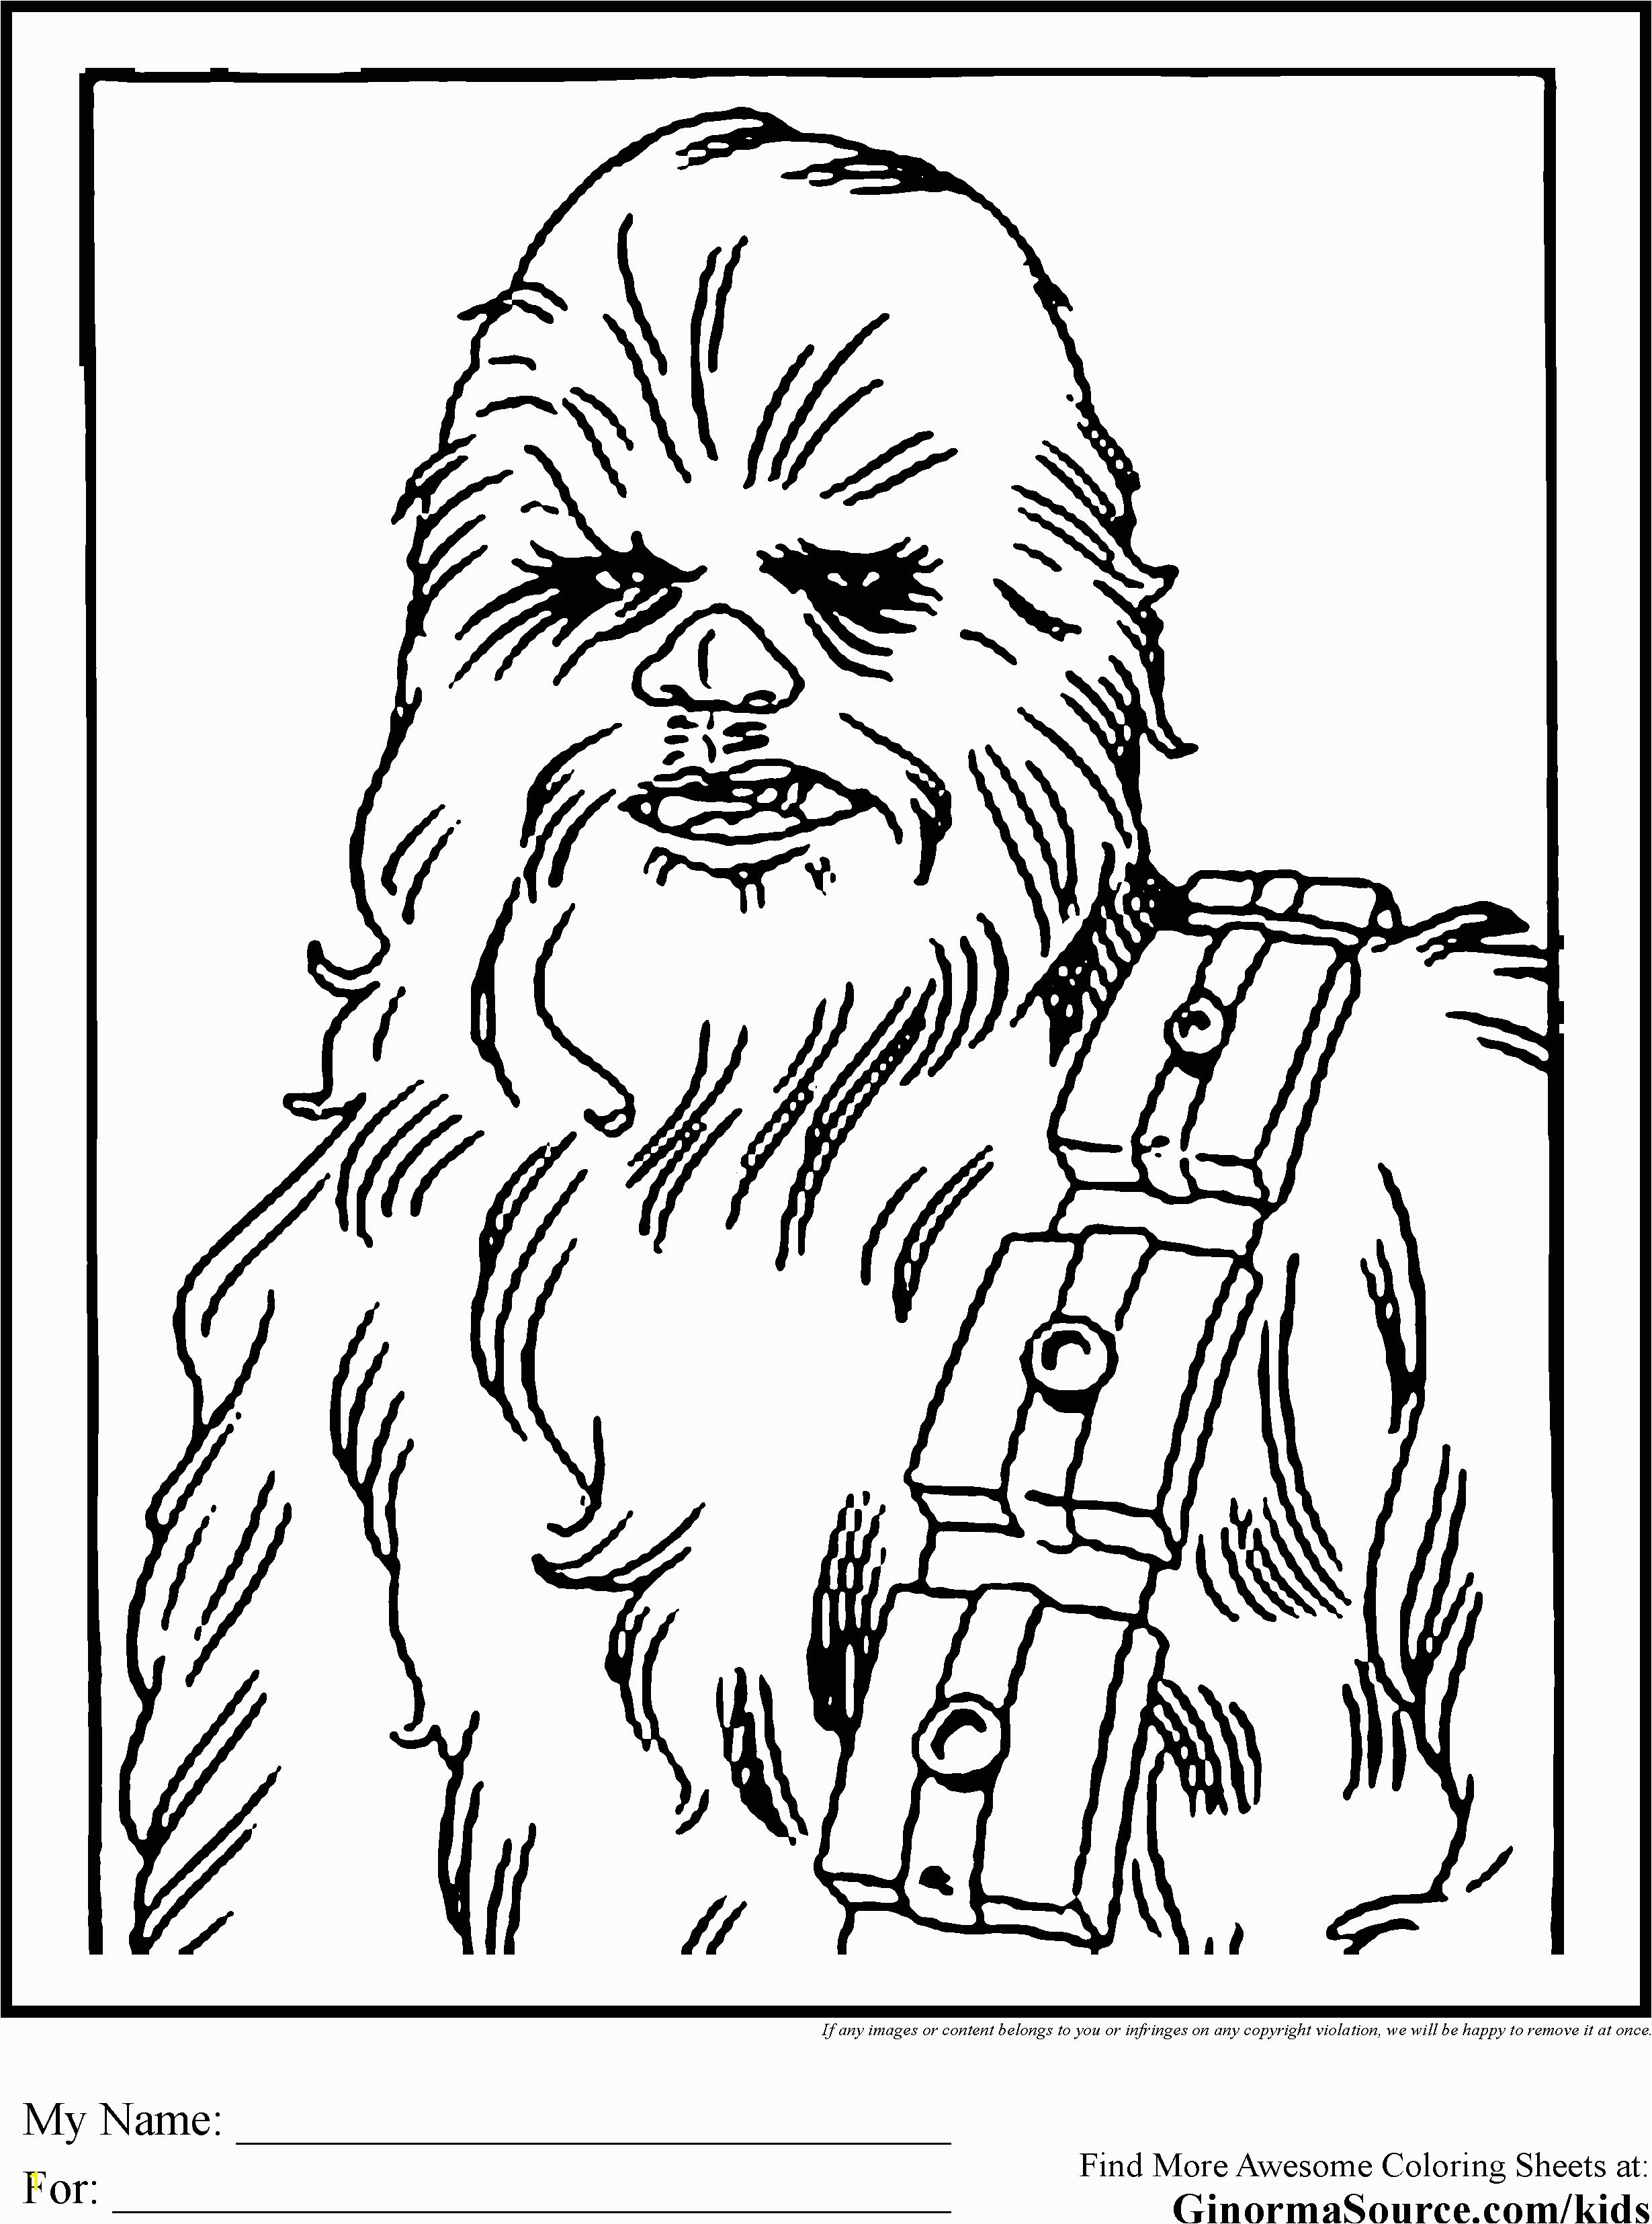 Ausmalbilder Star Trek Frisch Lego Star Wars 3 Coloring Pages Star Wars Coloring Pages Awesome